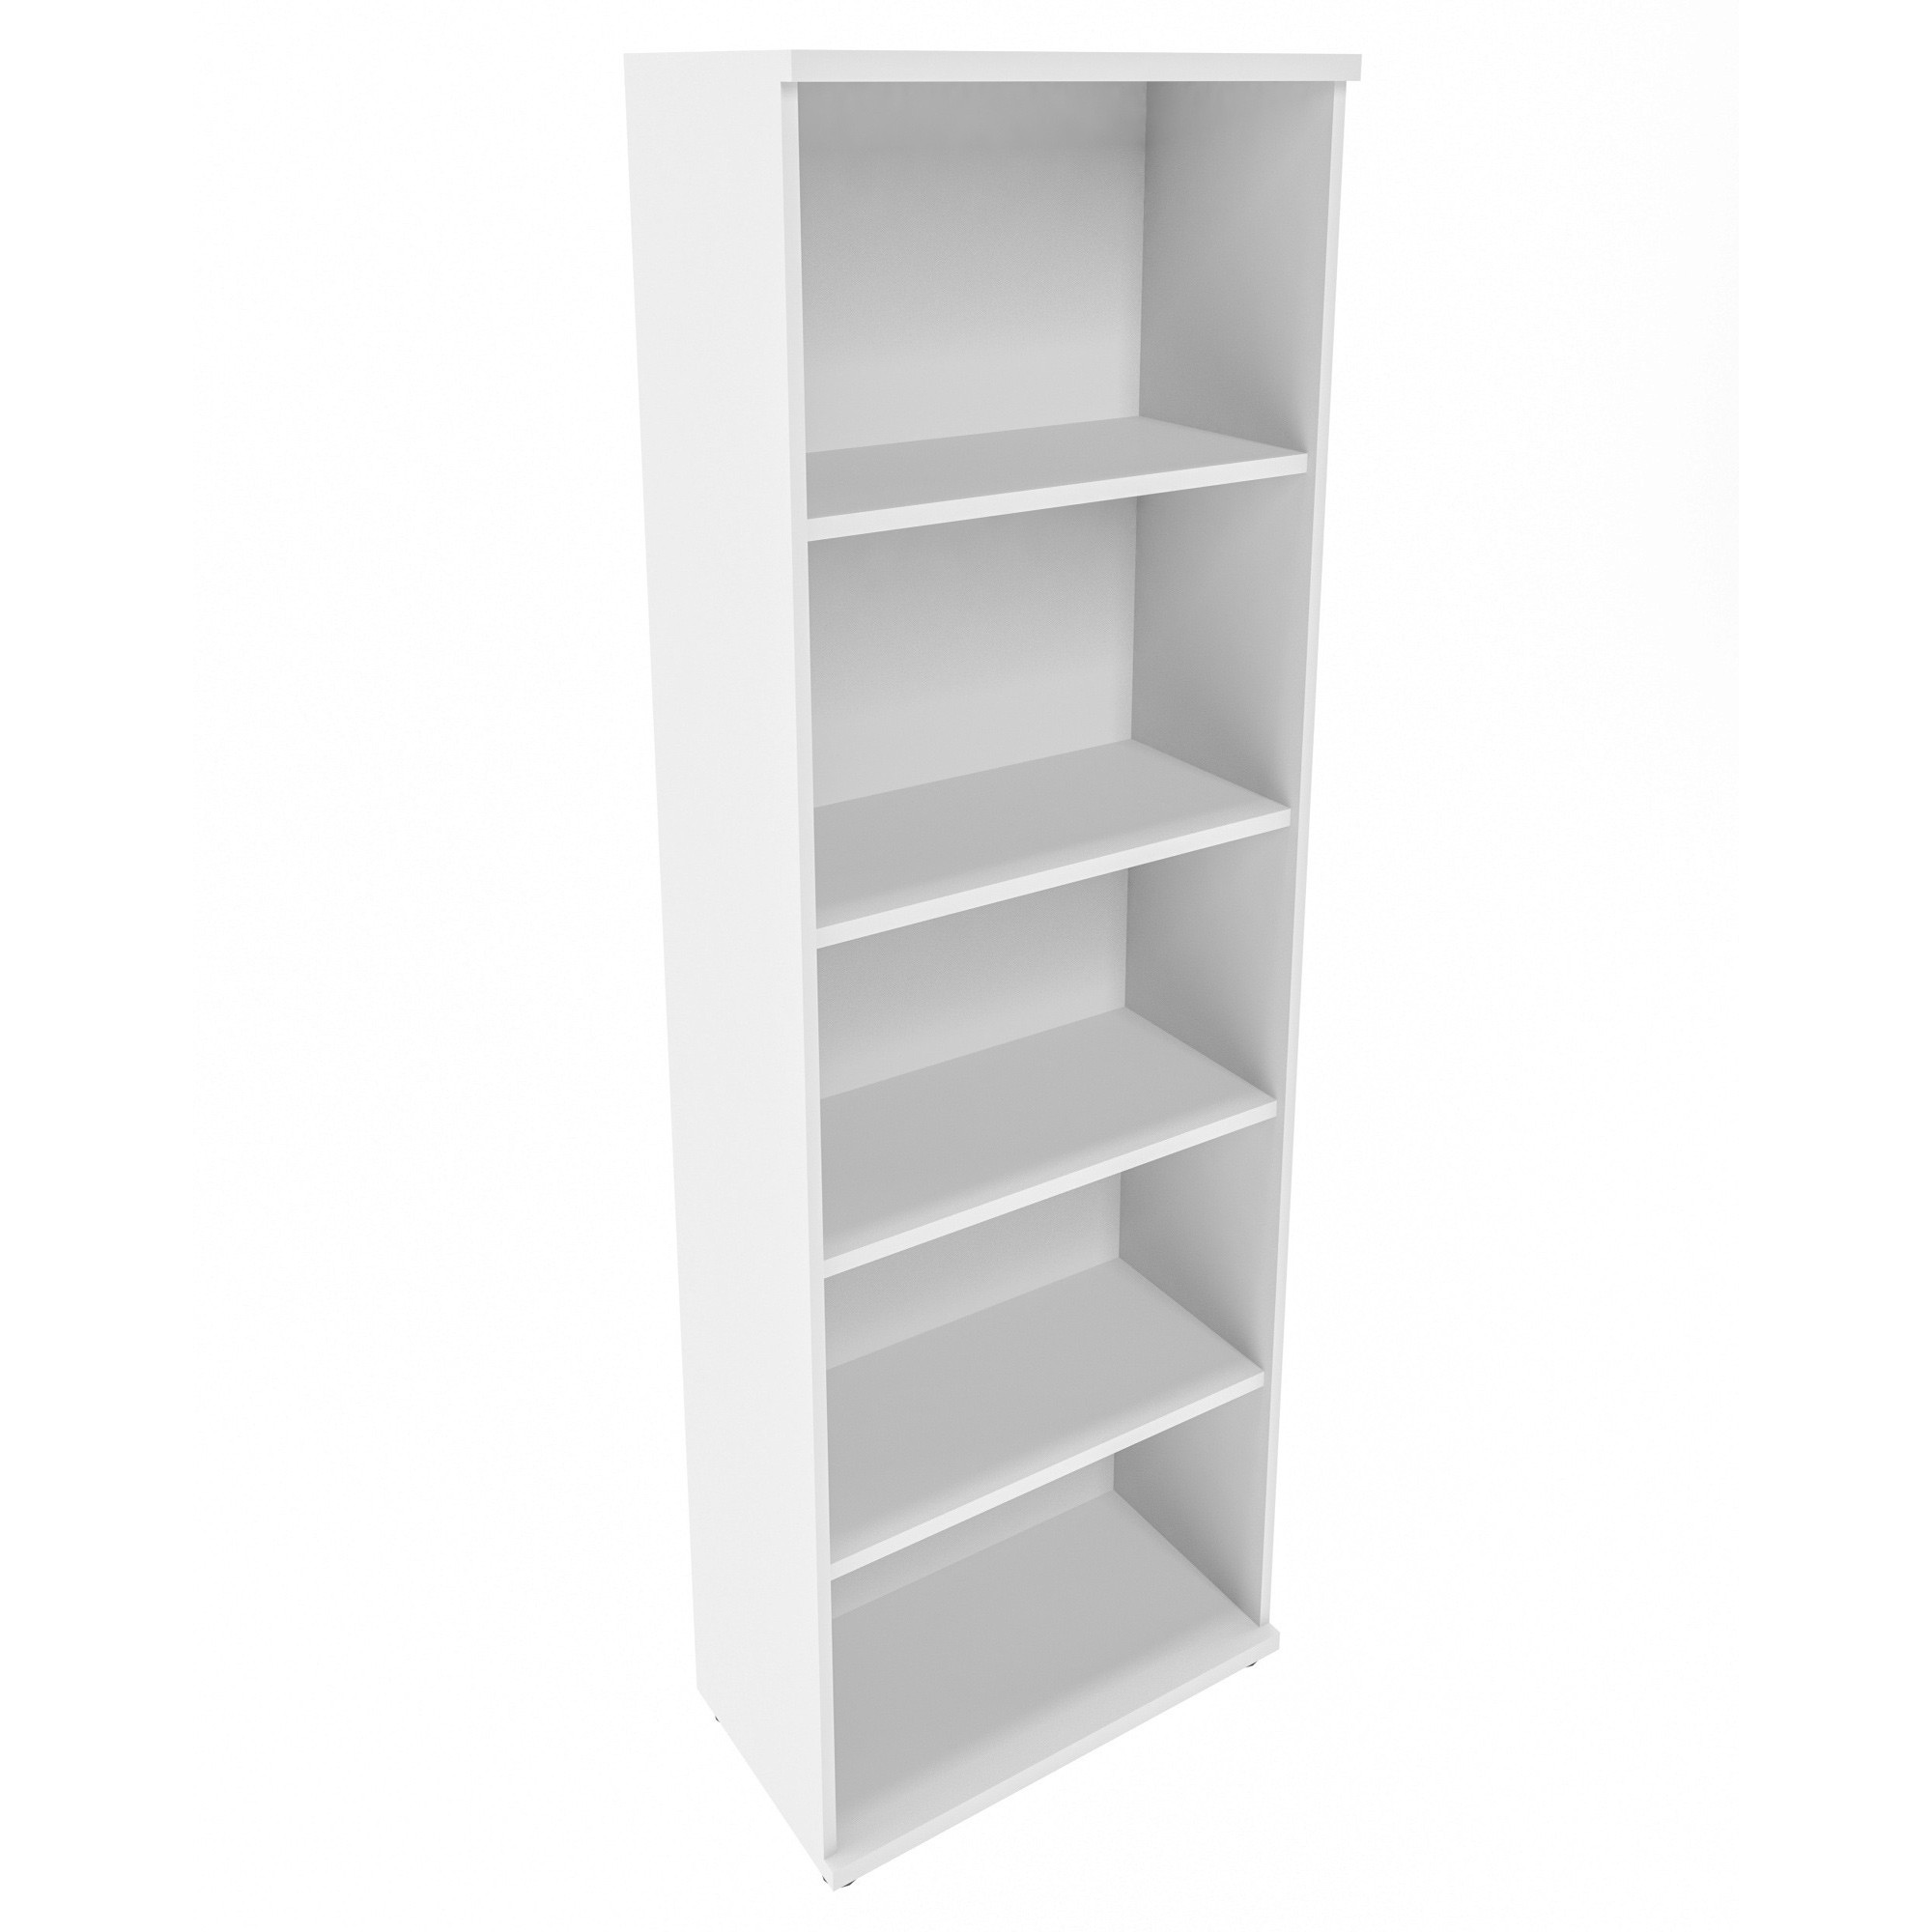 PROFI Bücherragel 5OH Regal Standregal Holzregal Wandregal Schrank Büro Weiß